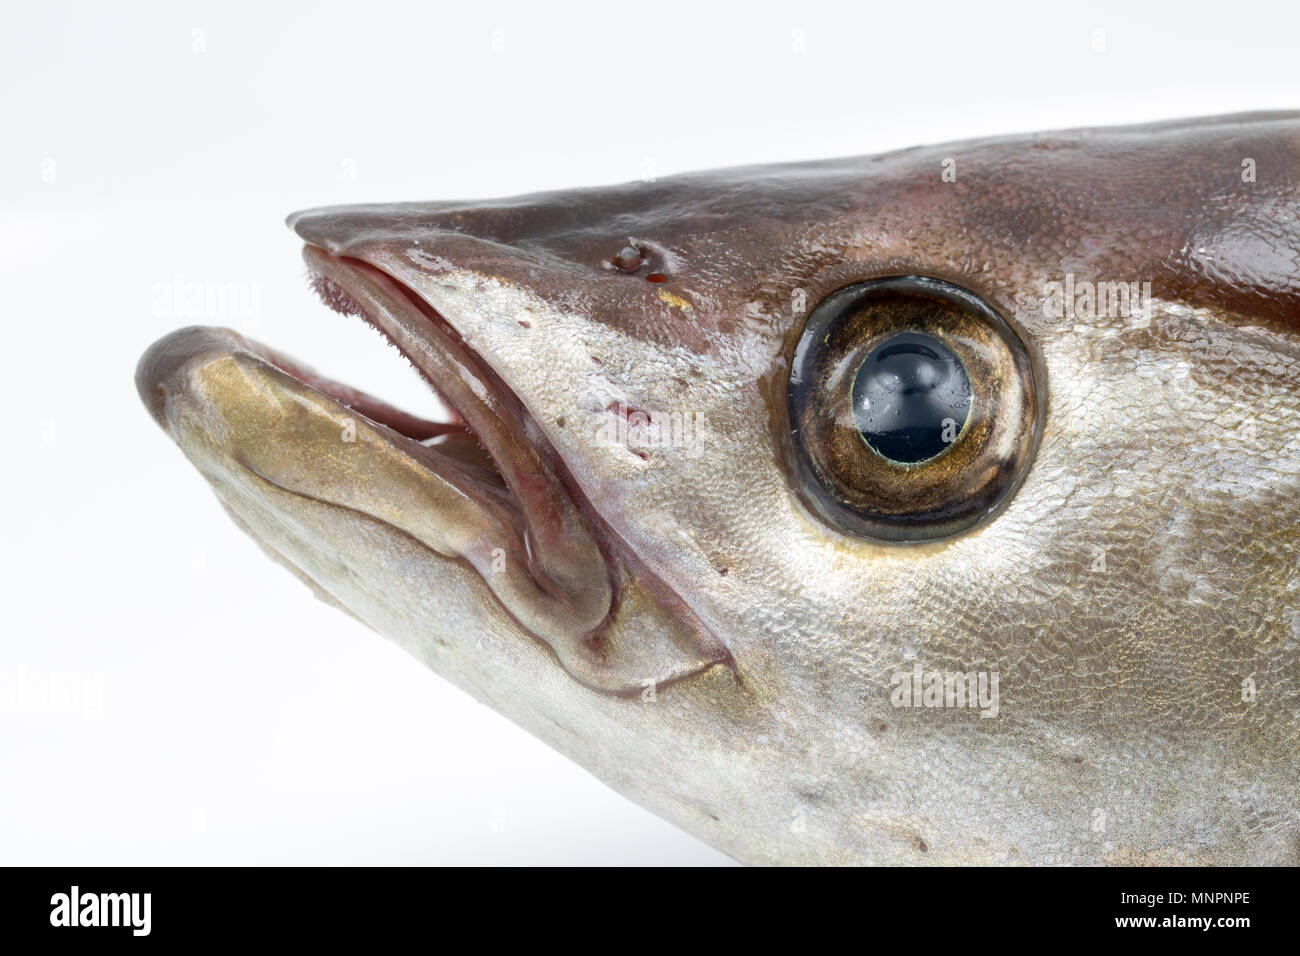 The head of a pollack, Pollachius pollachius, that was caught lure fishing from a private boat in the English Channel off the Dorset Coast which is pa - Stock Image